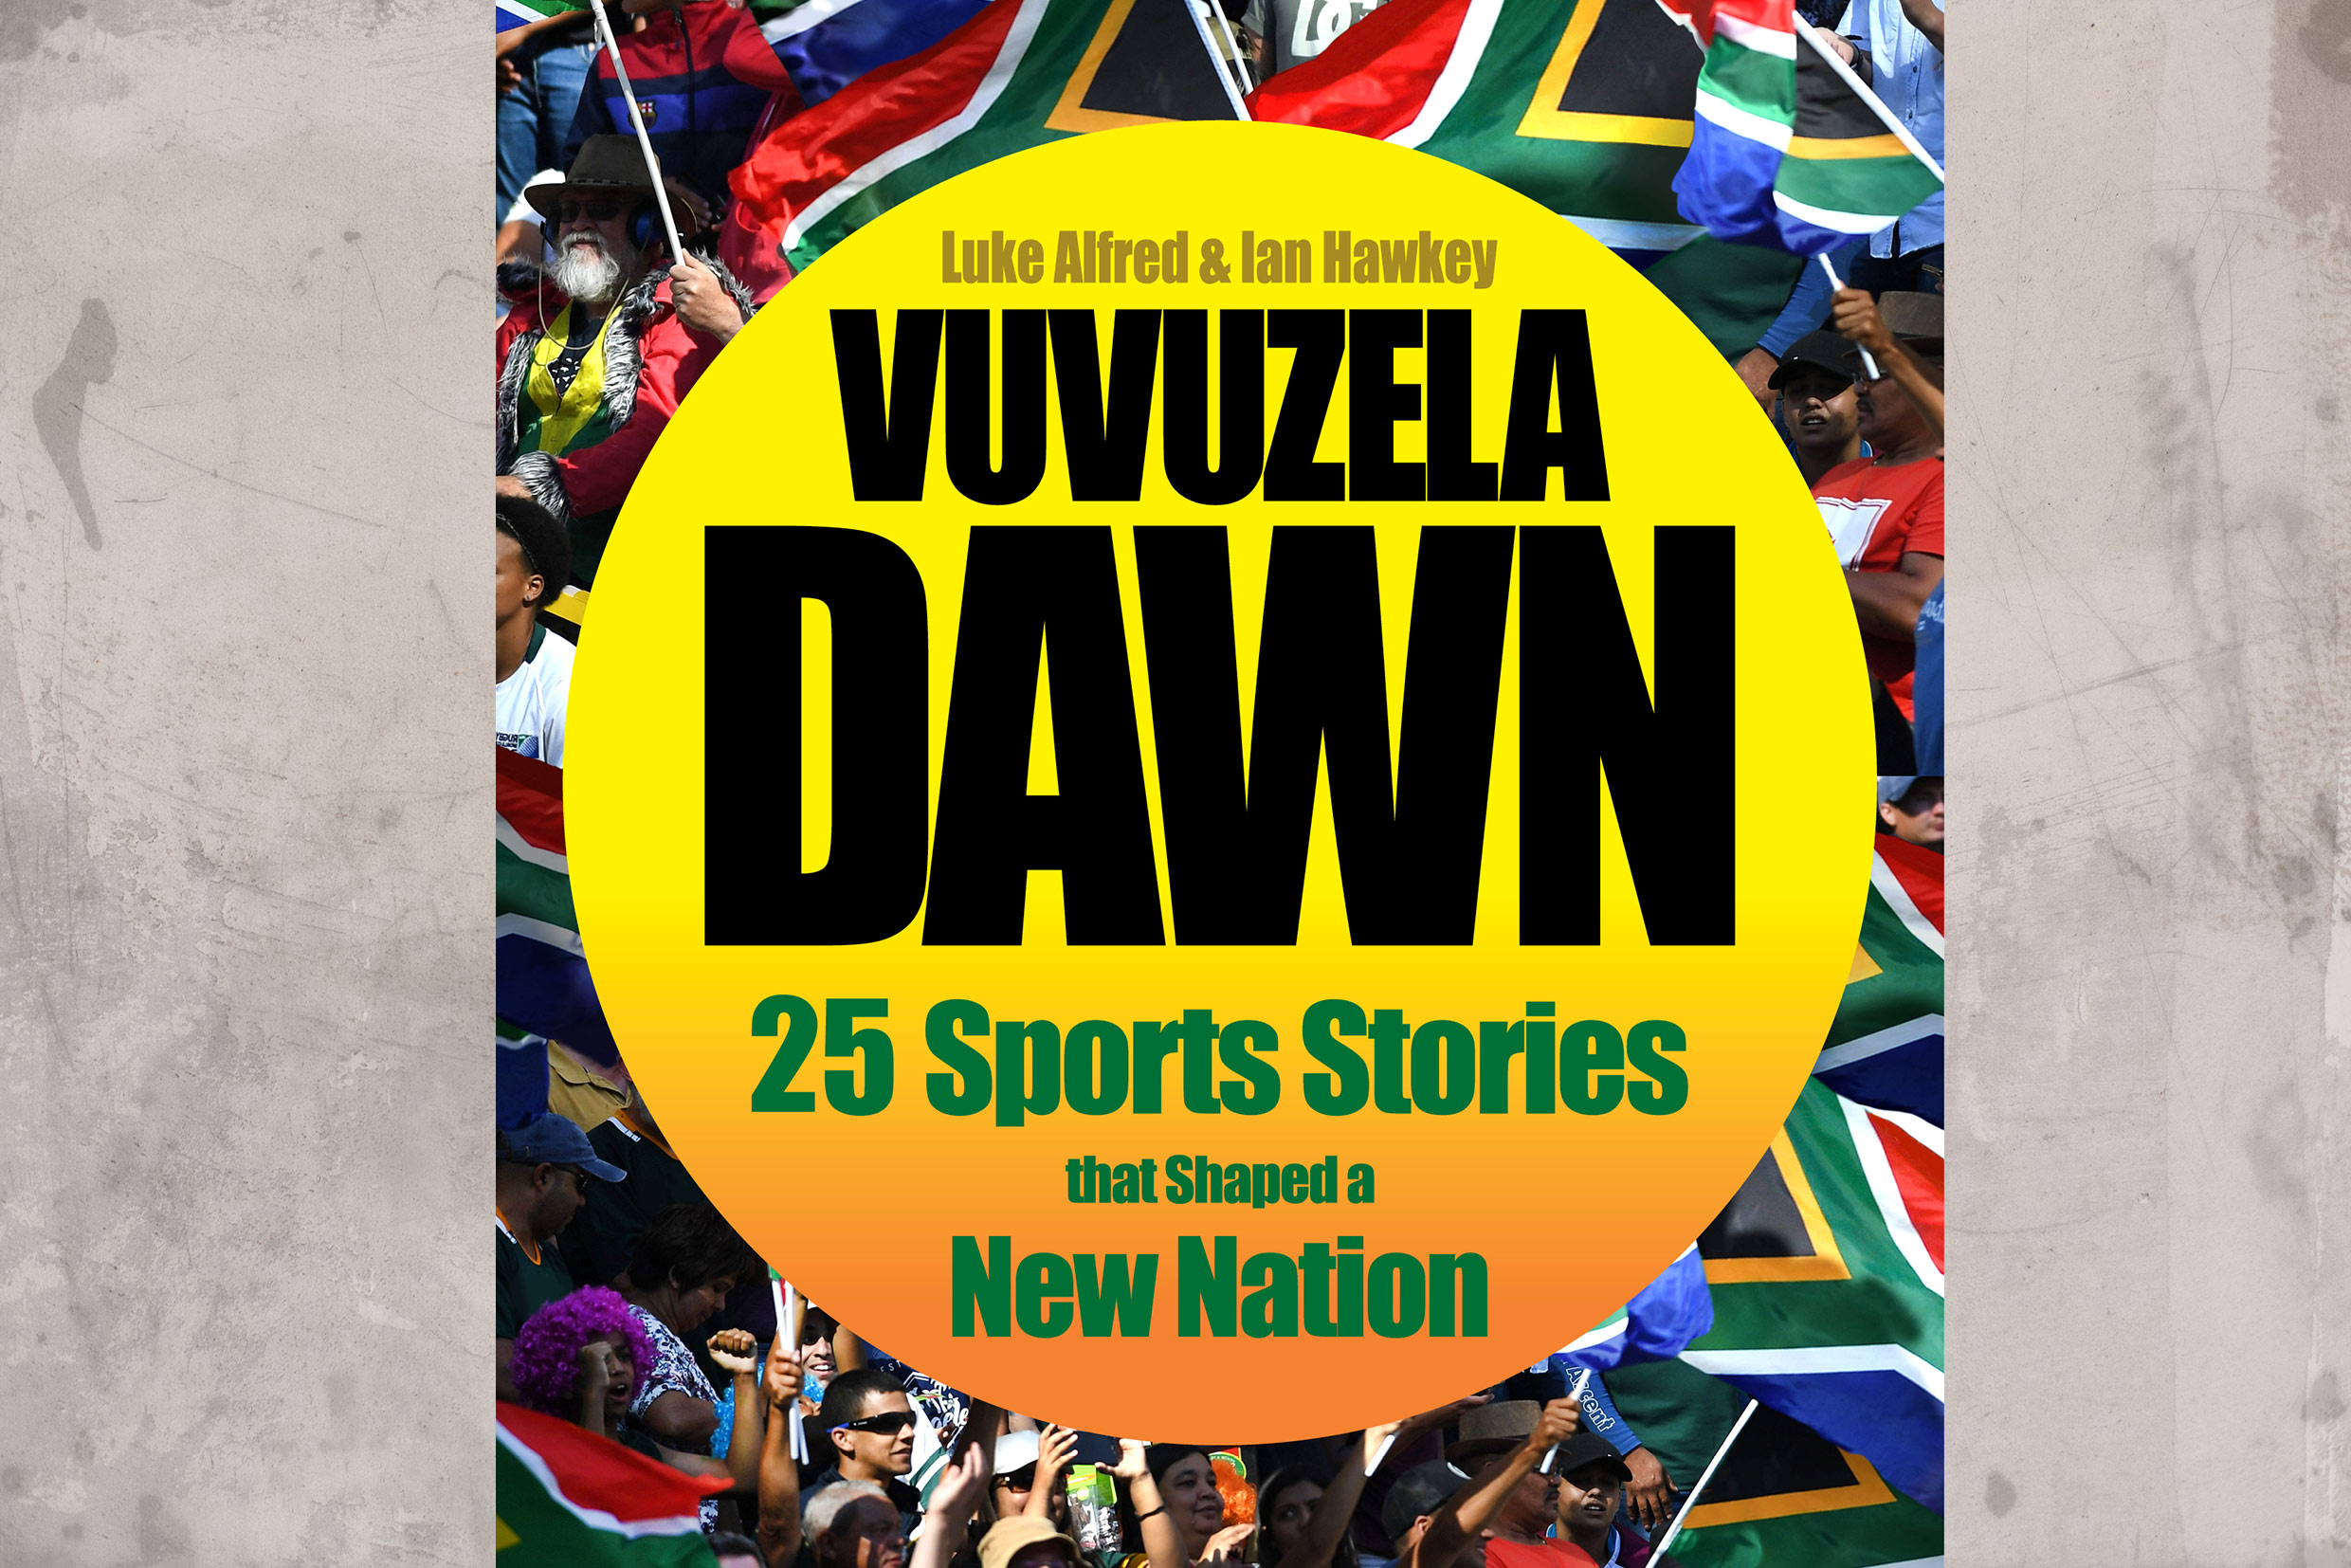 Undated: The book cover for Ian Hawkey and Luke Alfred's Vuvuzela Dawn: 25 Sporting Stories that Shaped a New Nation, published by Pan Macmillan South Africa in 2019.